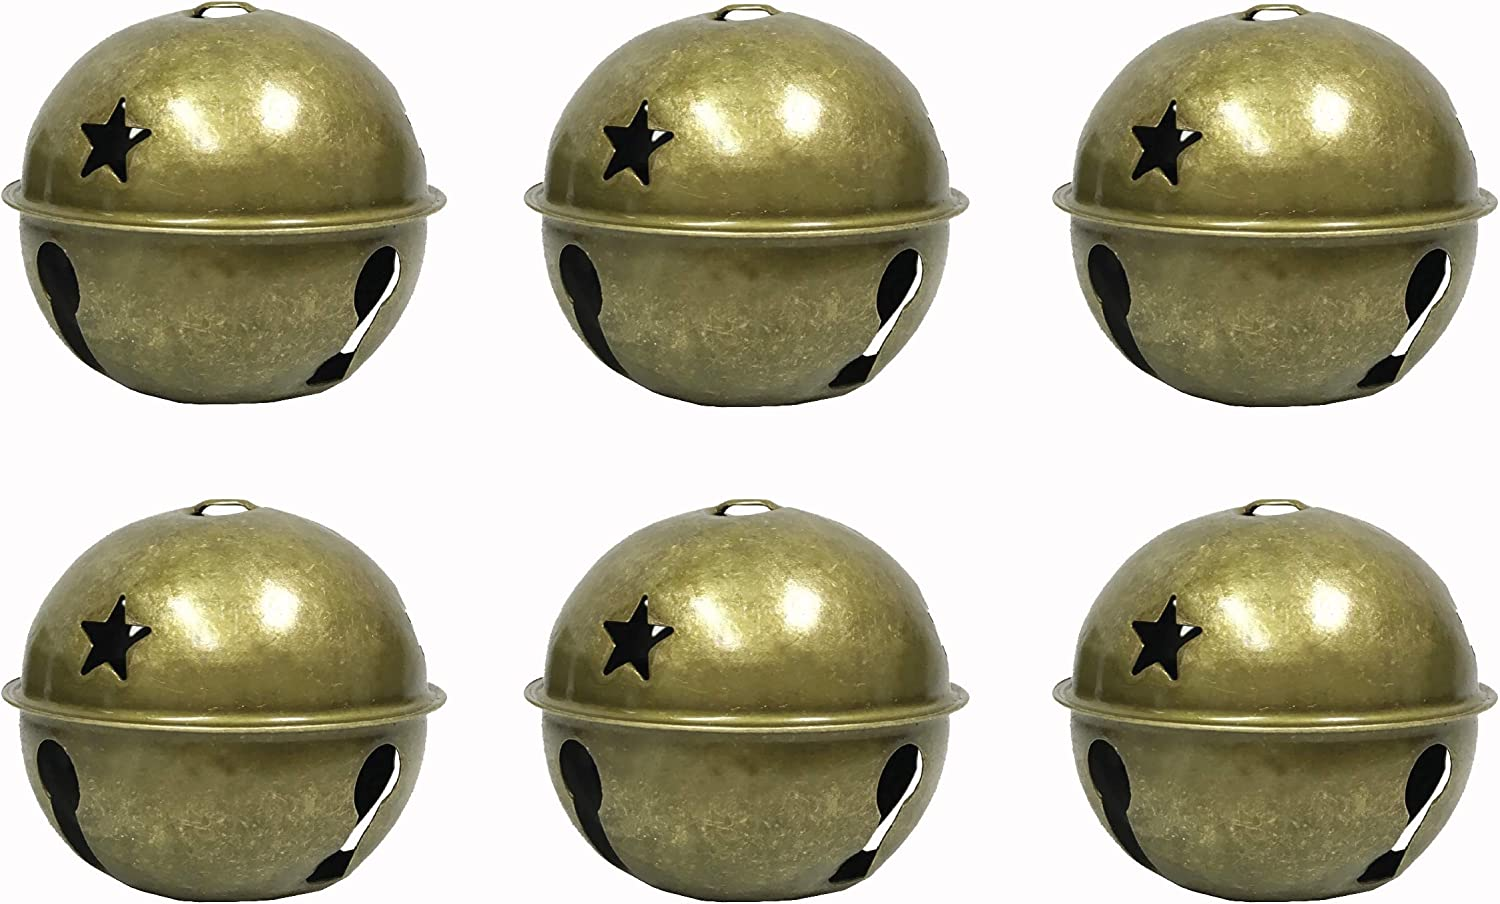 Large Jumbo Size Christmas Star Cutout Jingle Sleigh Bell Ornament 3 Pack Of 6 Antique Copper Arts Crafts Sewing